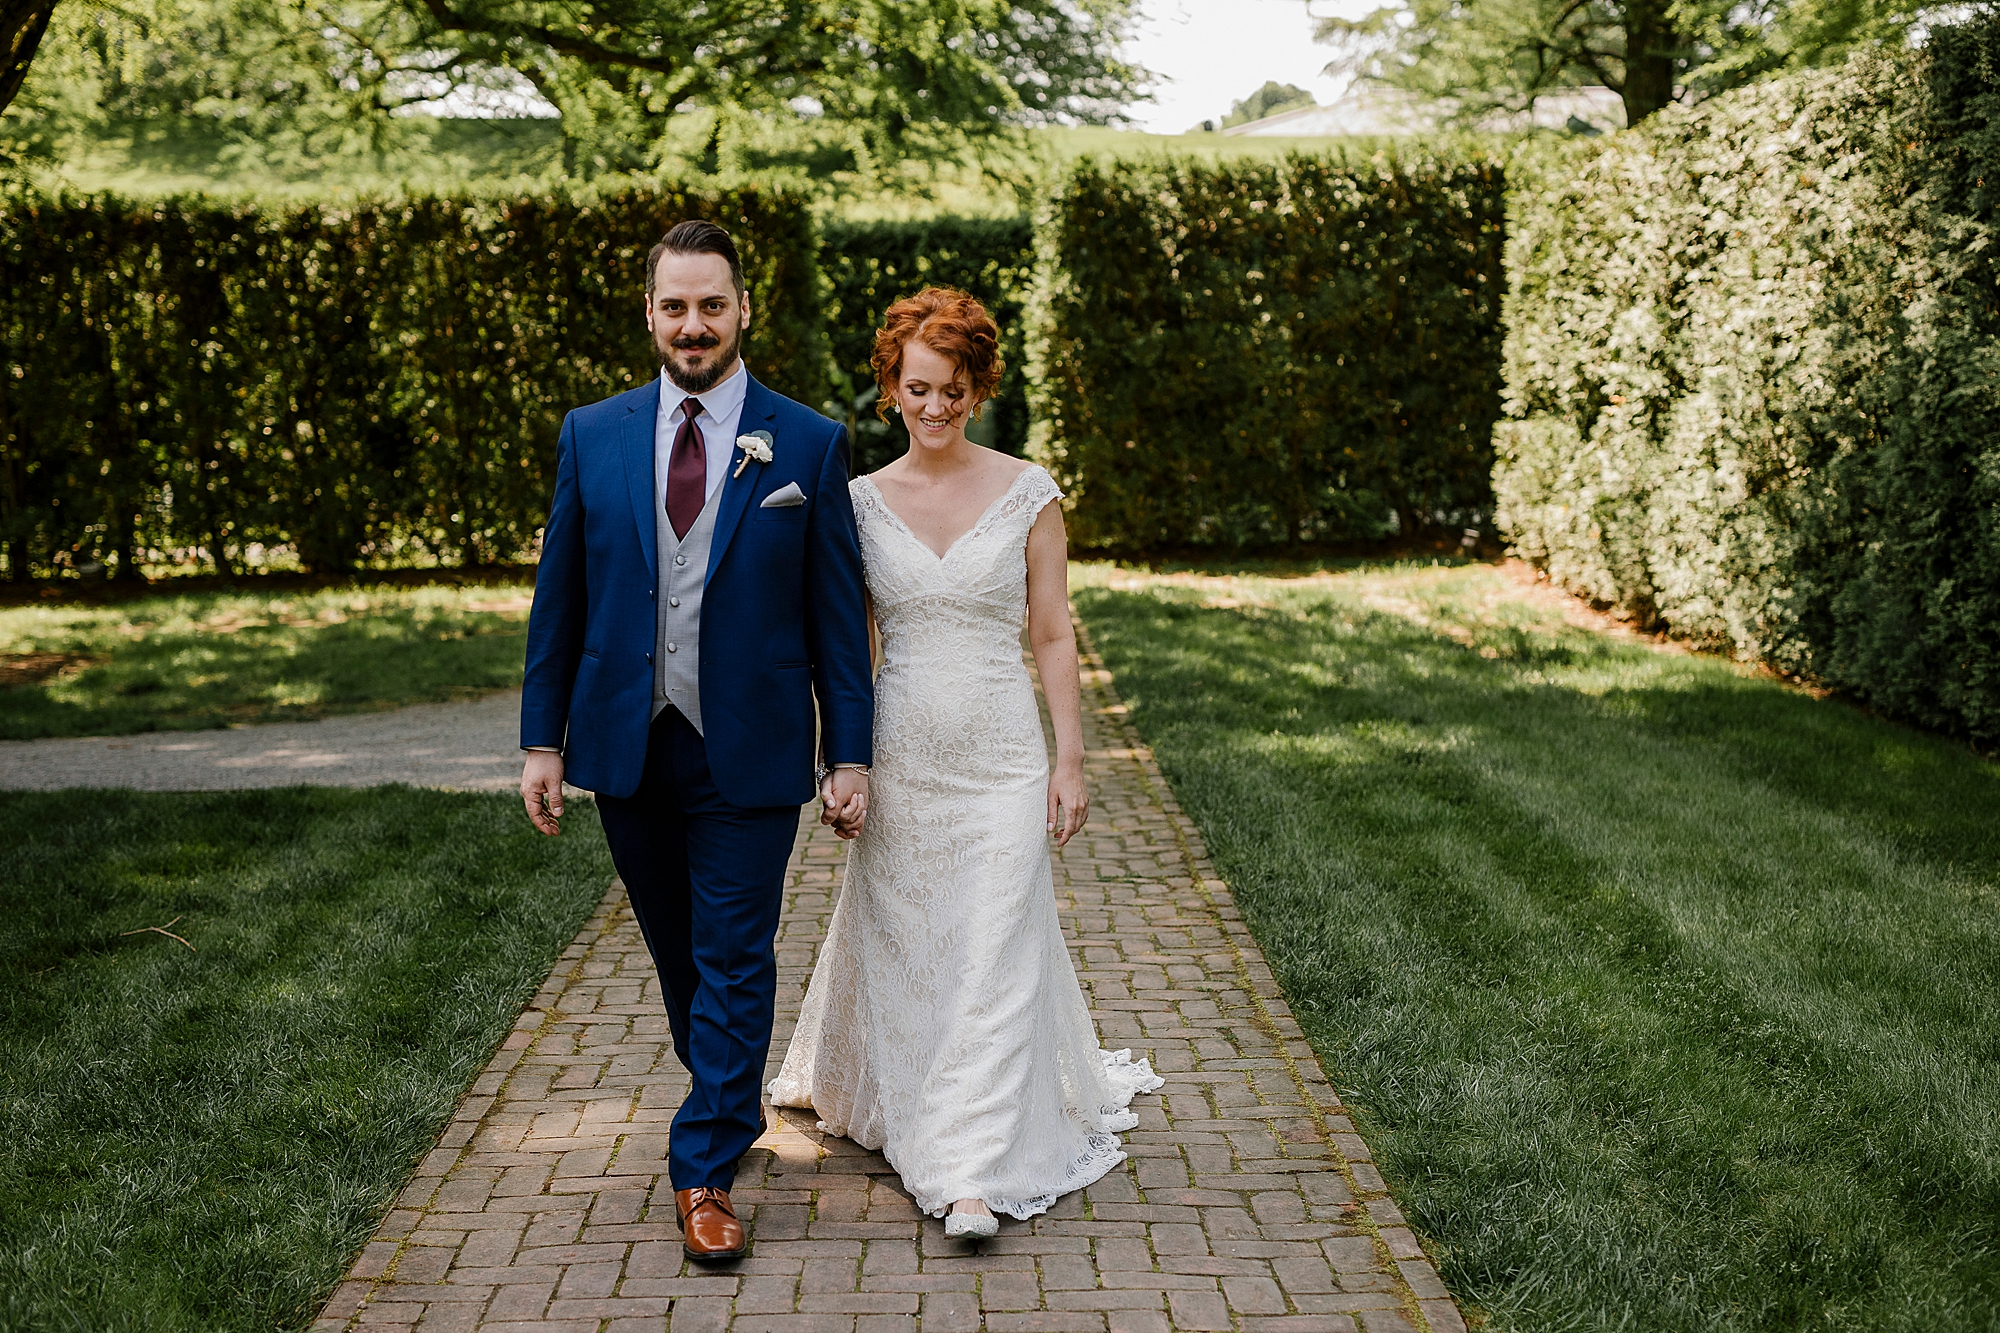 Megan and Daniel_Northbrook_Marketplace_Longwood_Gardens_Chester_County_Unionville_Love_by_Joe_Mac_Wedding_photography__0036.jpg